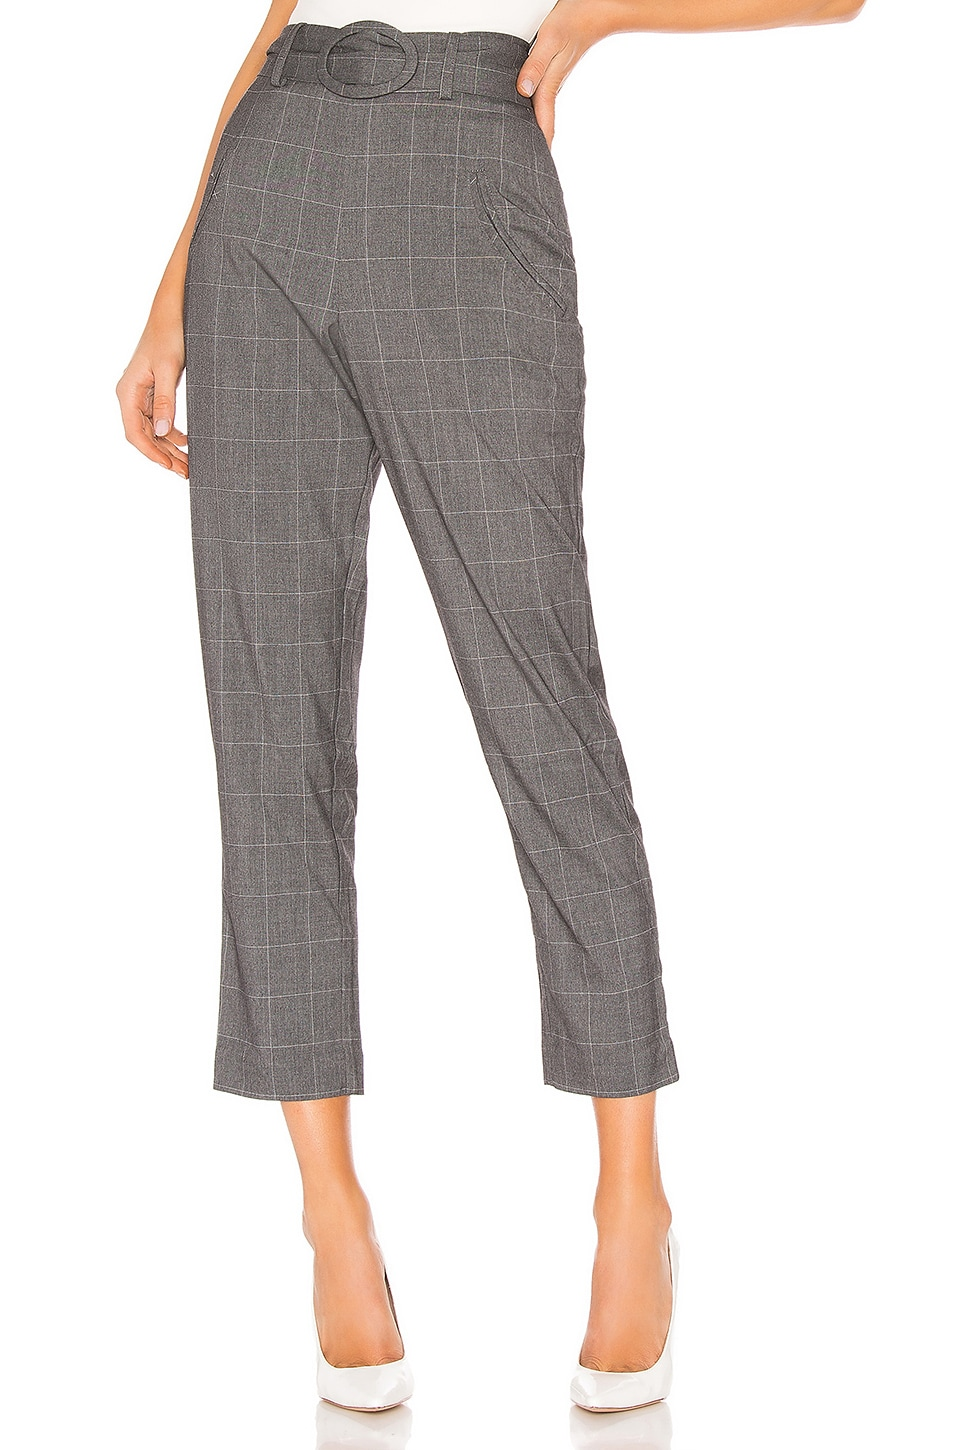 L'Academie The Joan Pant in Grey